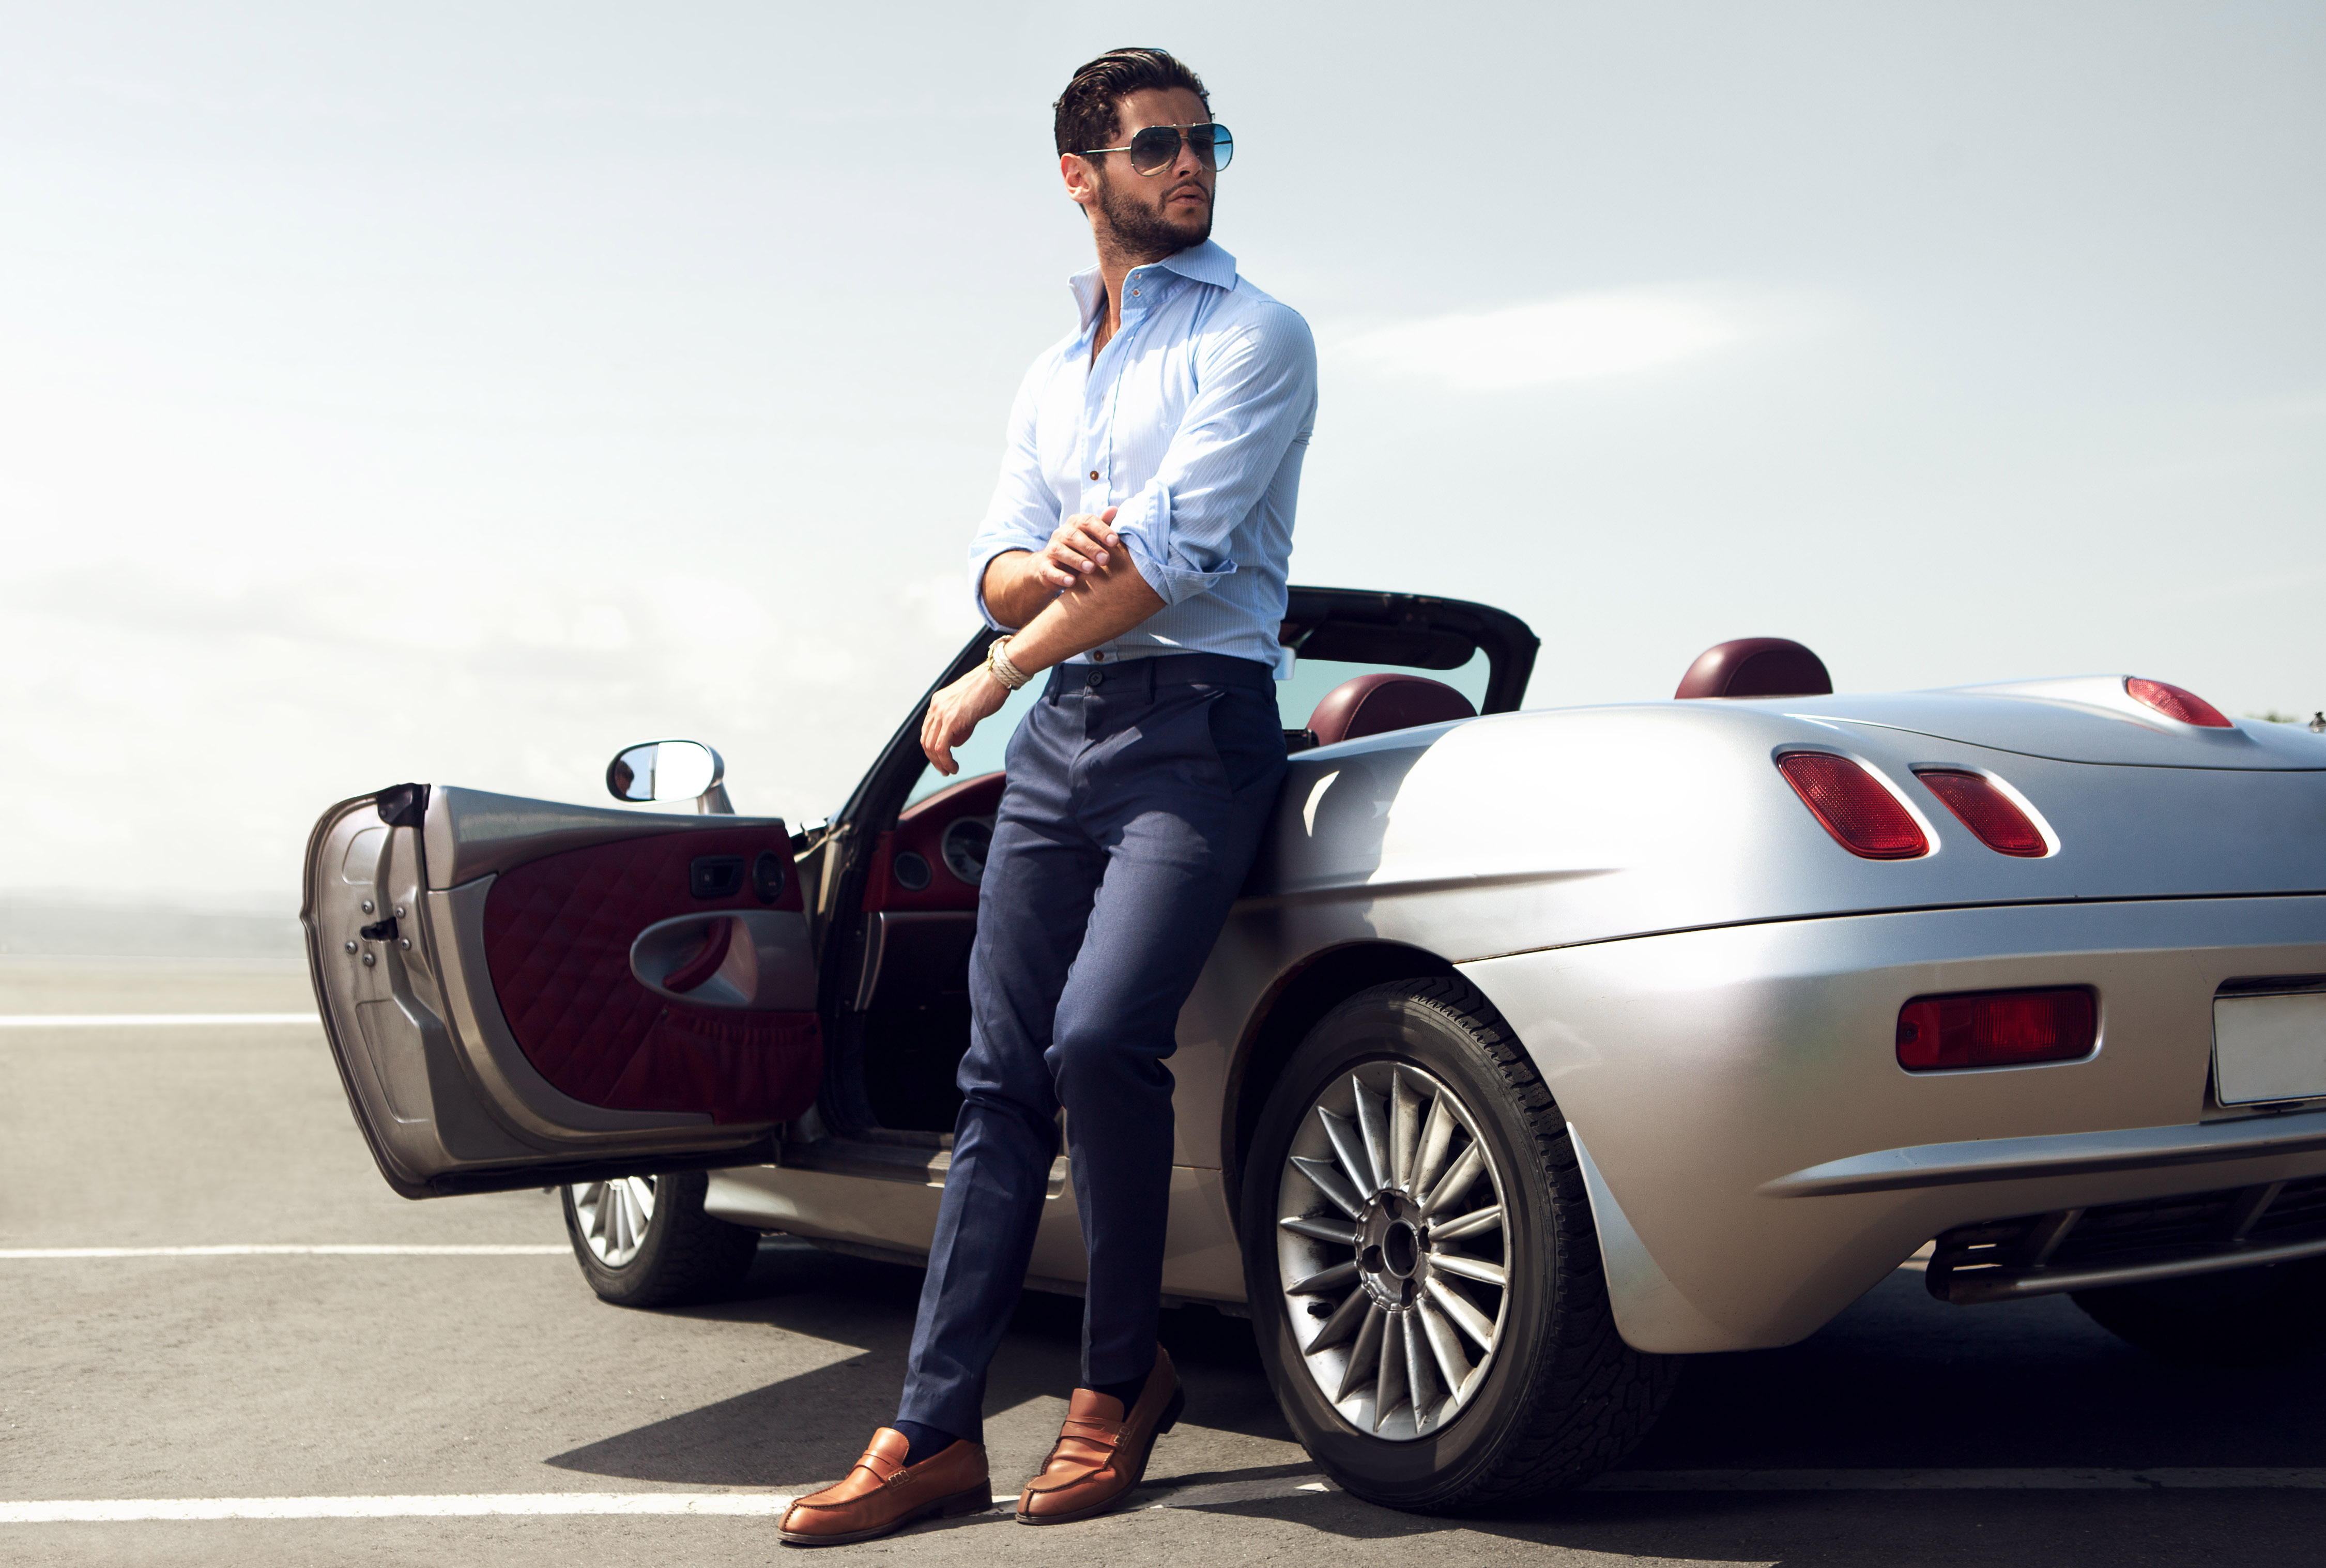 pictures For Men, Testosterone May Drive Luxury Purchases